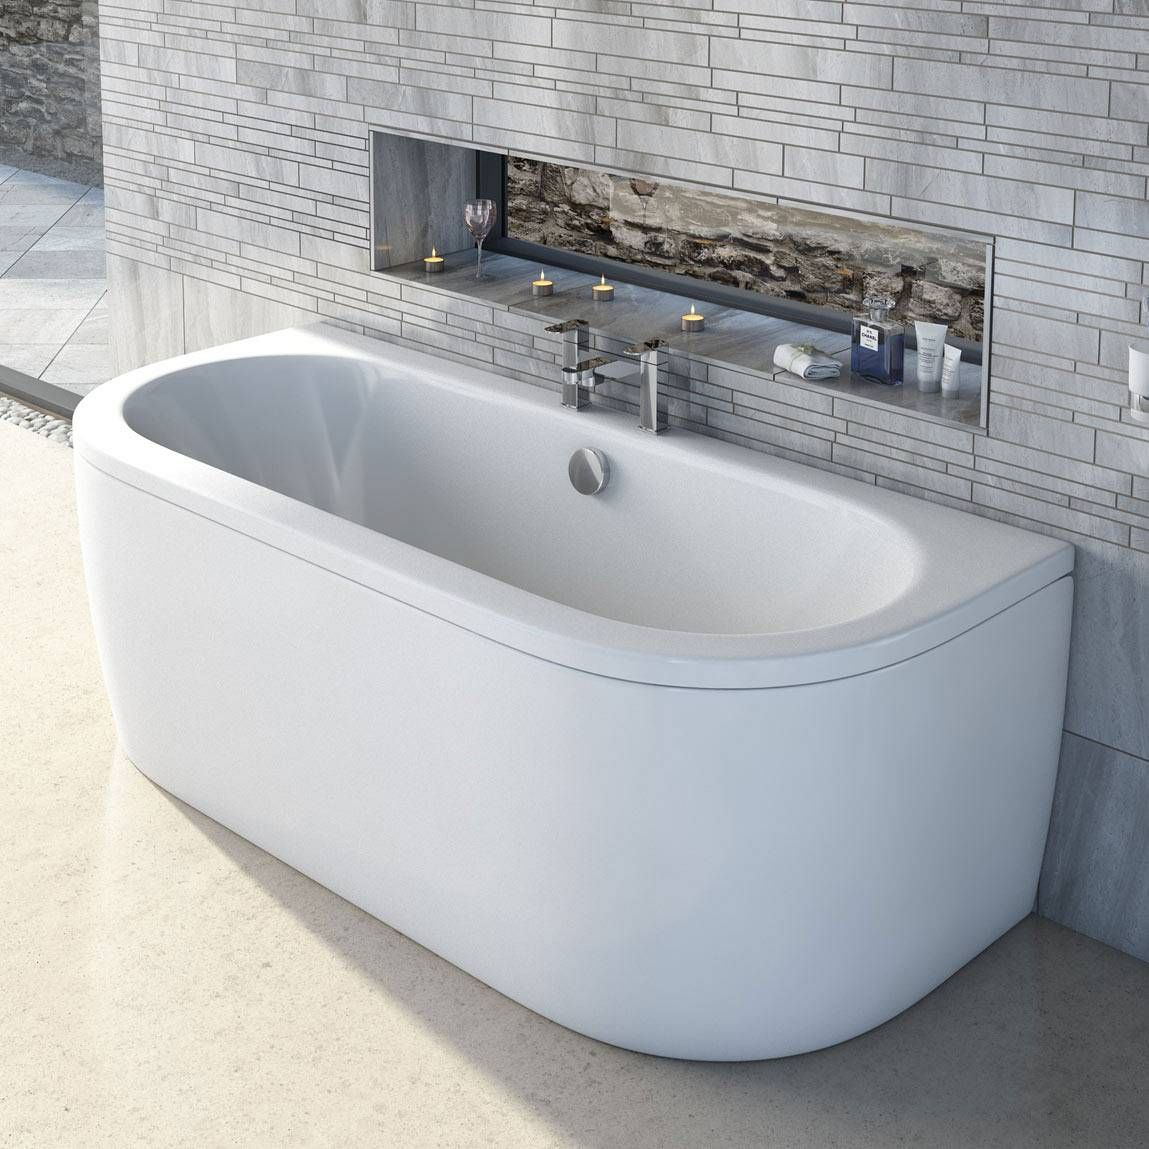 Plumbs bathroom suites - Cayman D Shaped Doubled Ended Back To Wall Bath Victoria Plumb